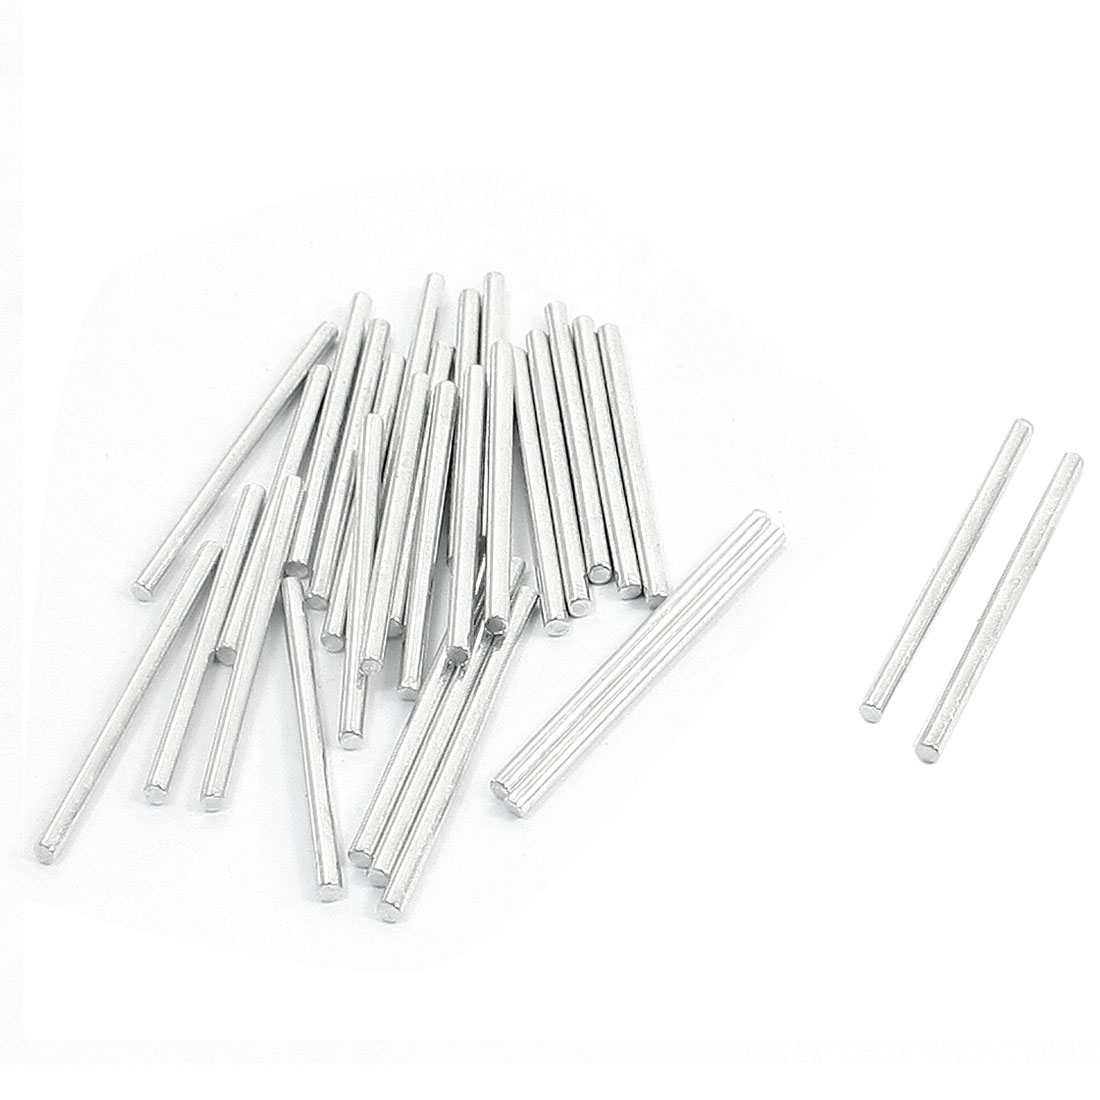 50 Pcs Rc Helicopter Model Part Stainless Steel Round Rods